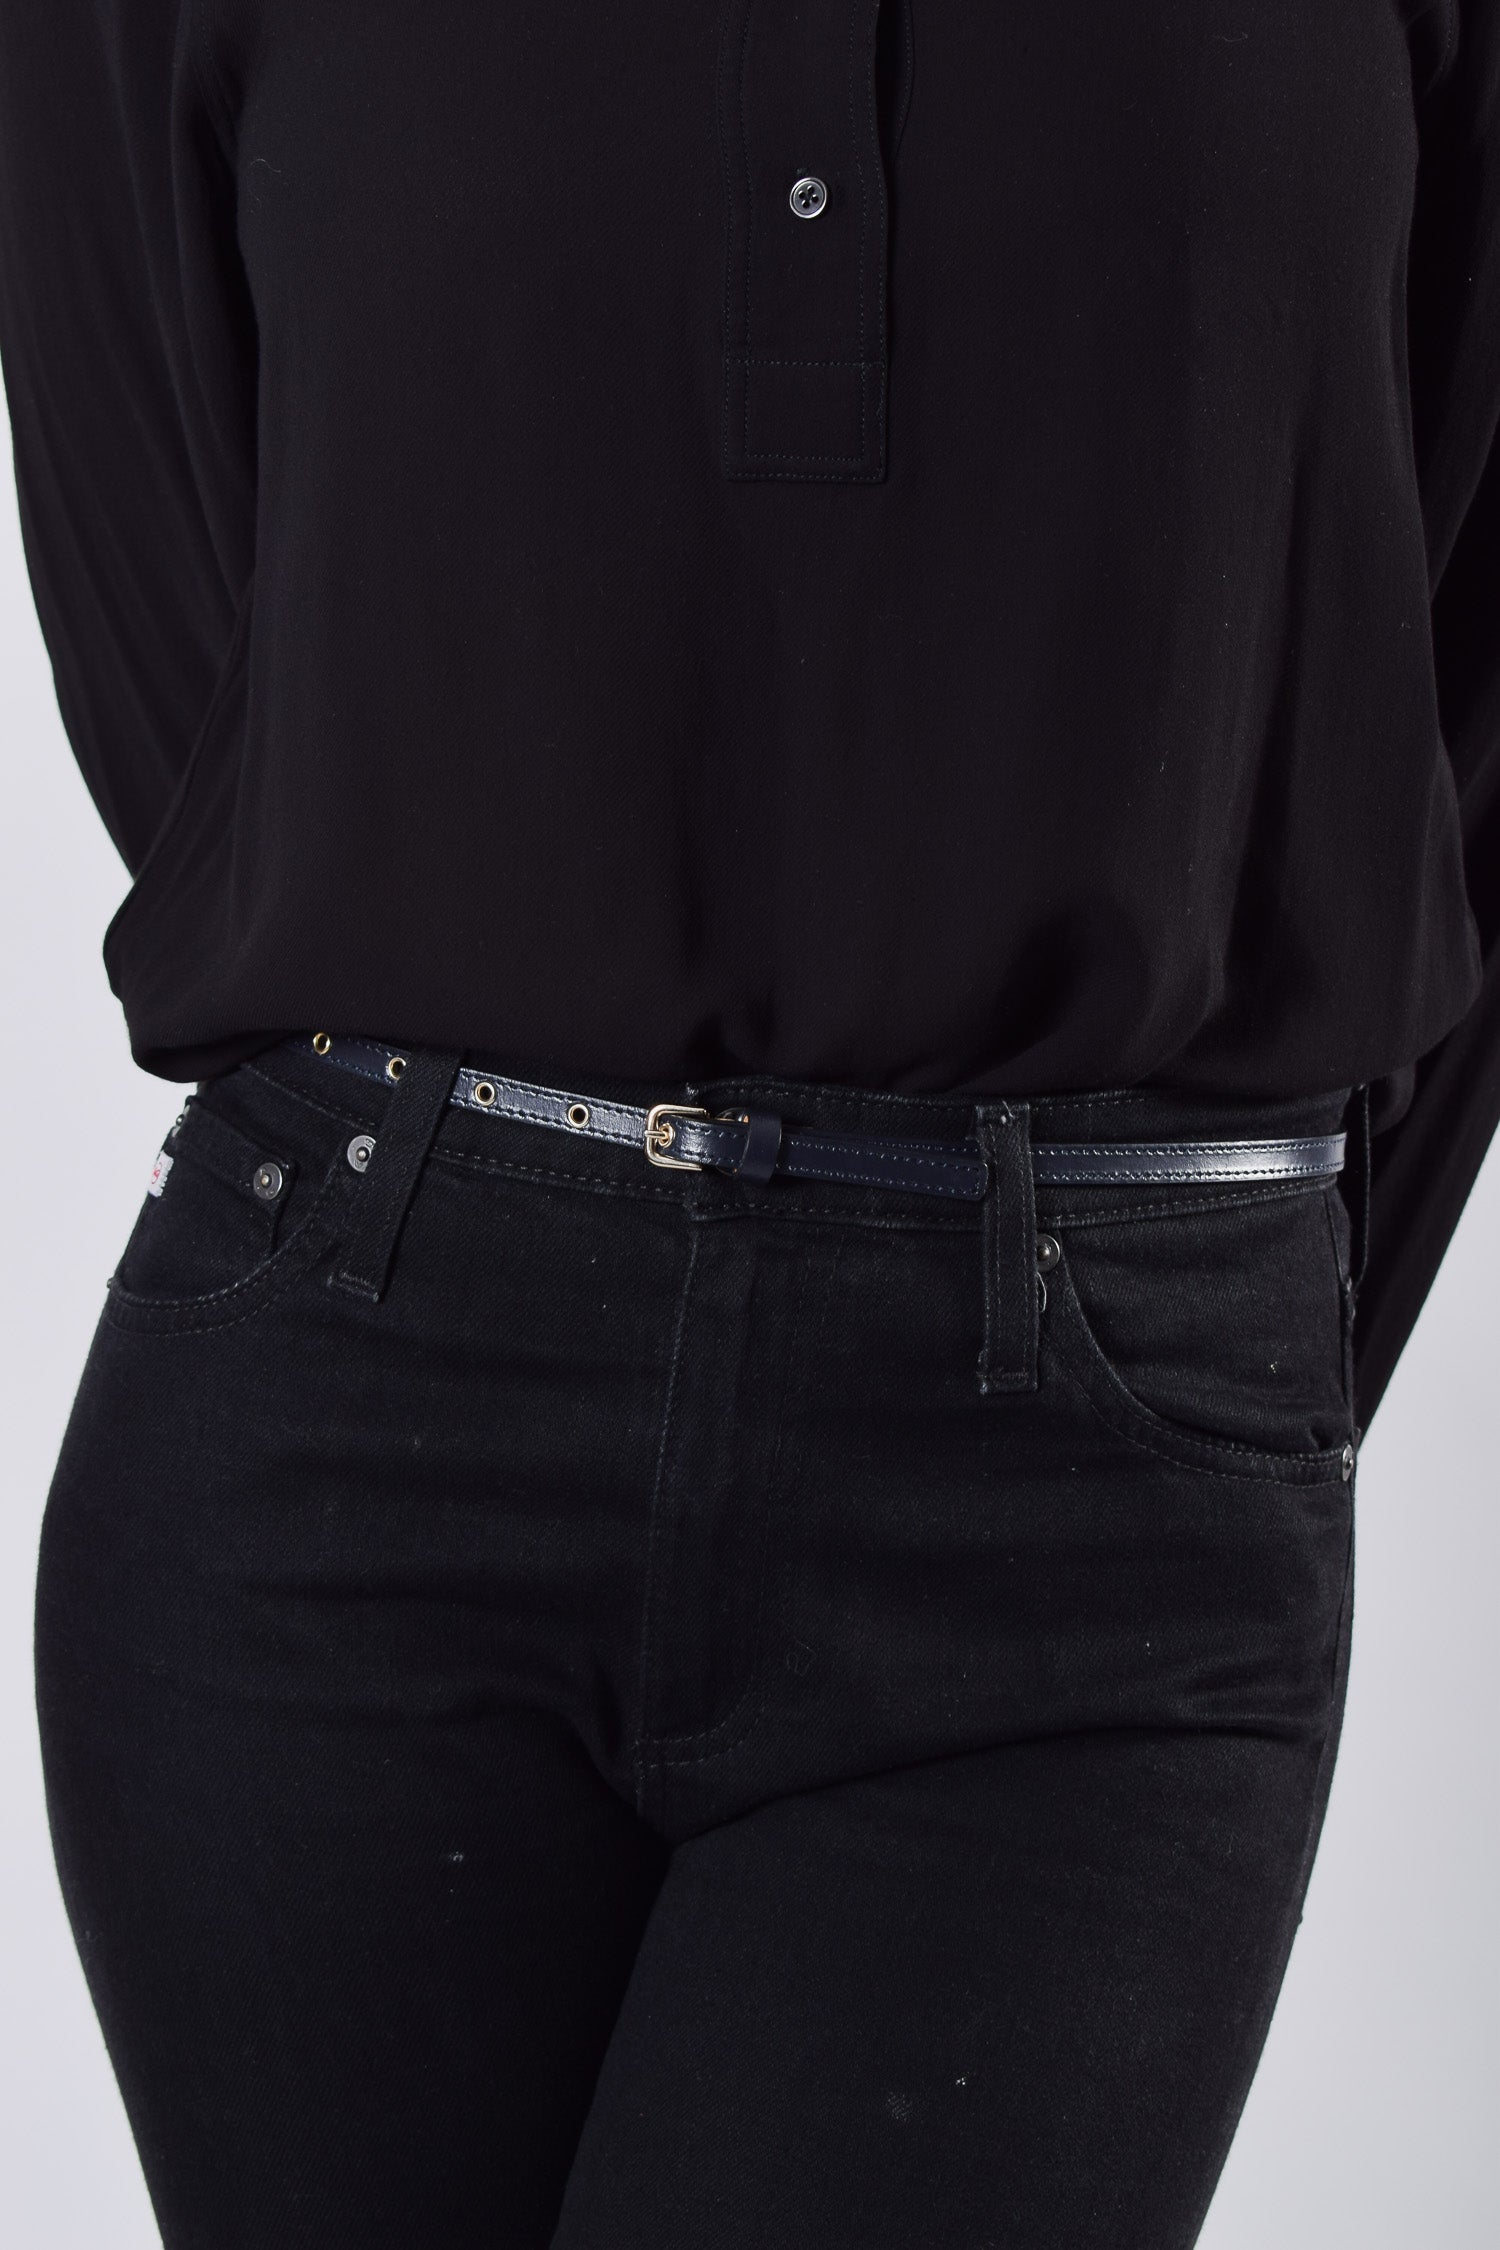 Max Mara Black Belt